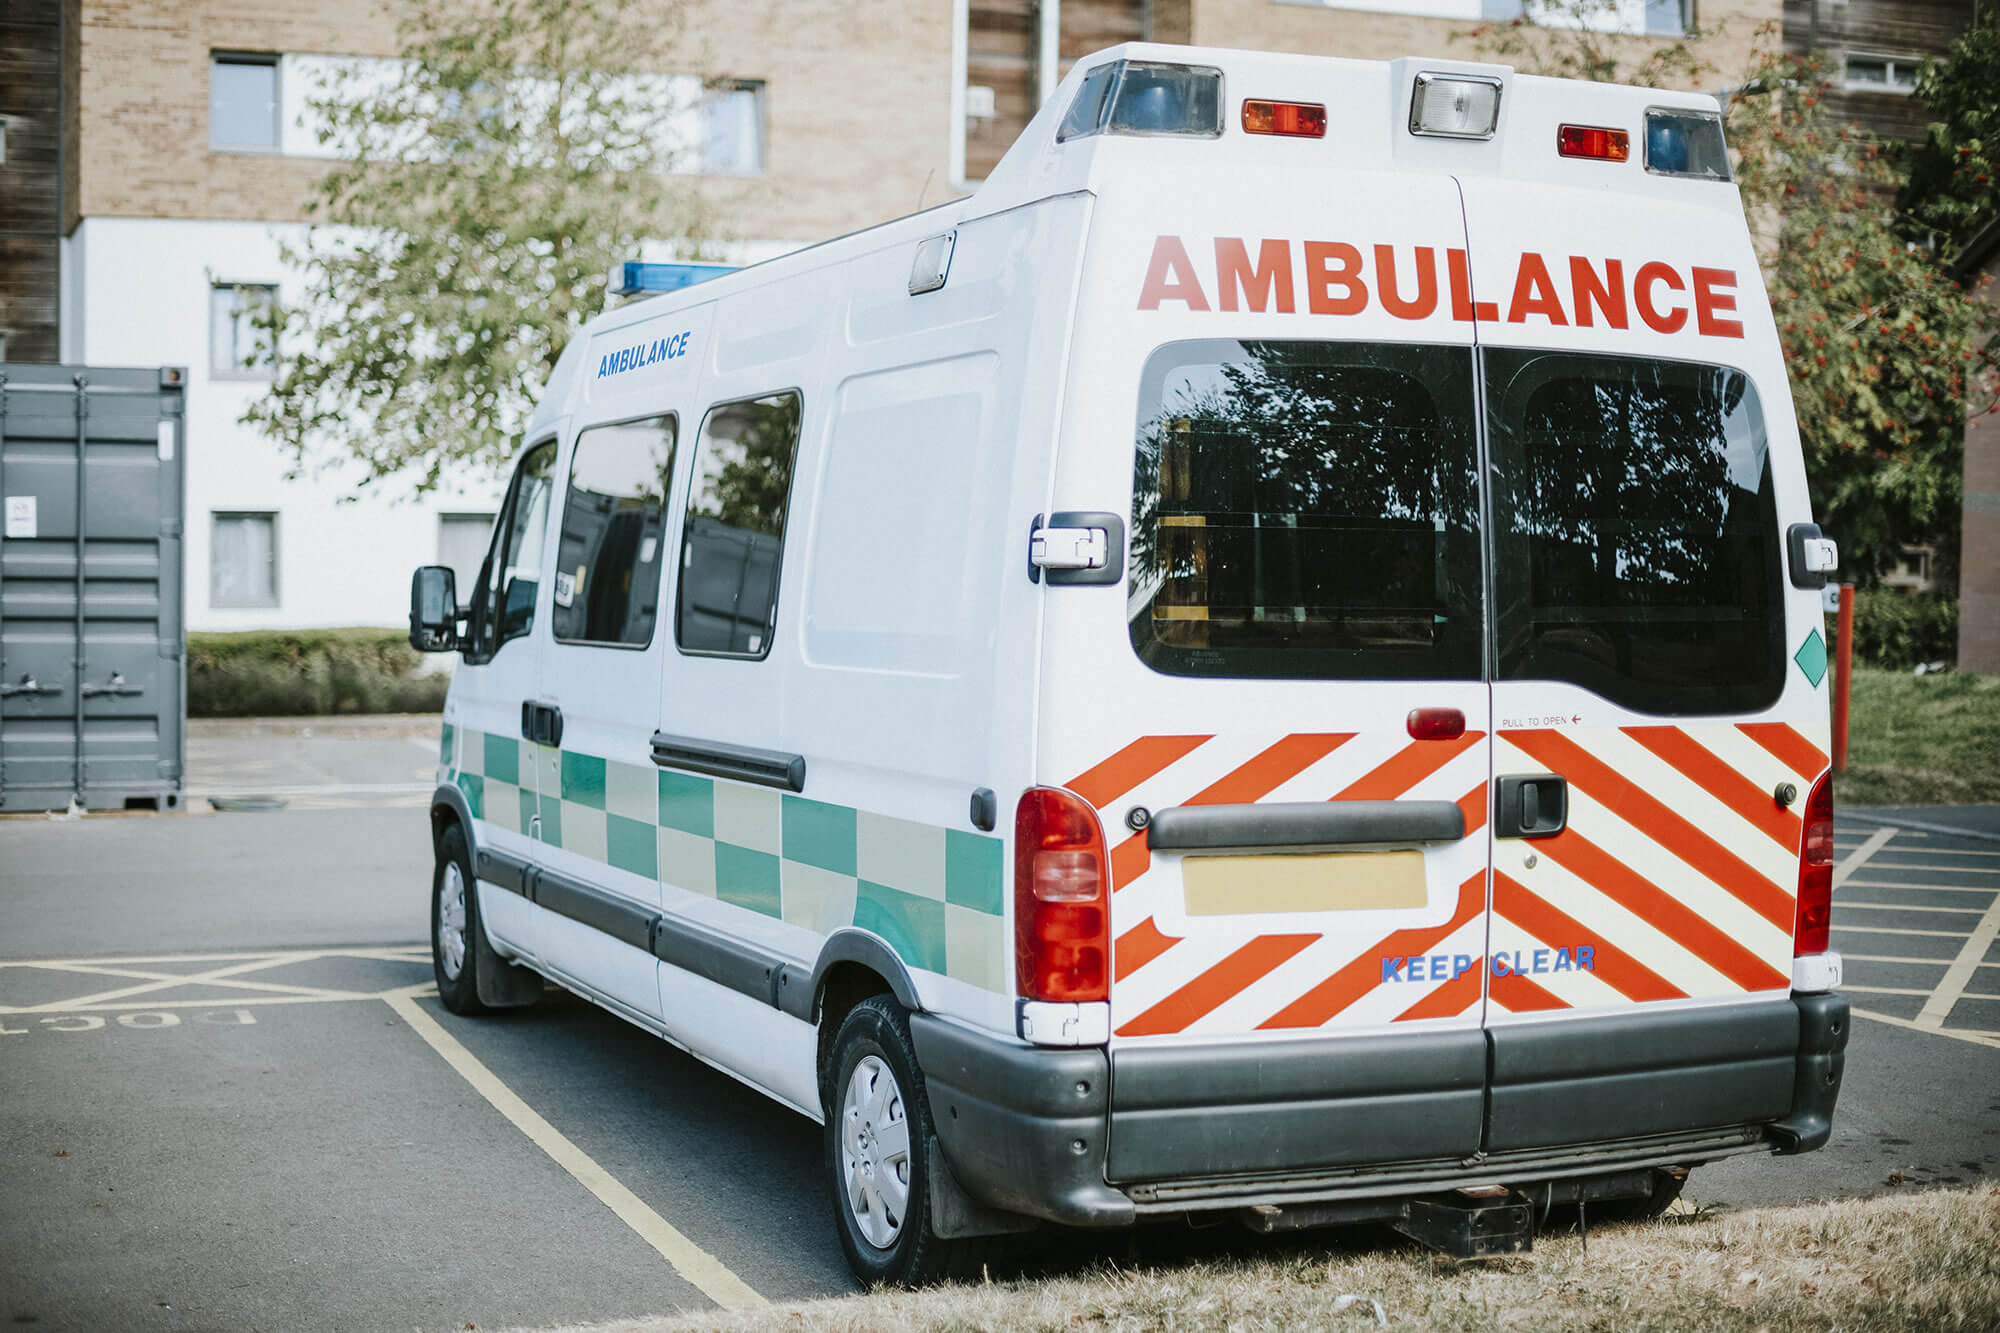 British ambulance parked